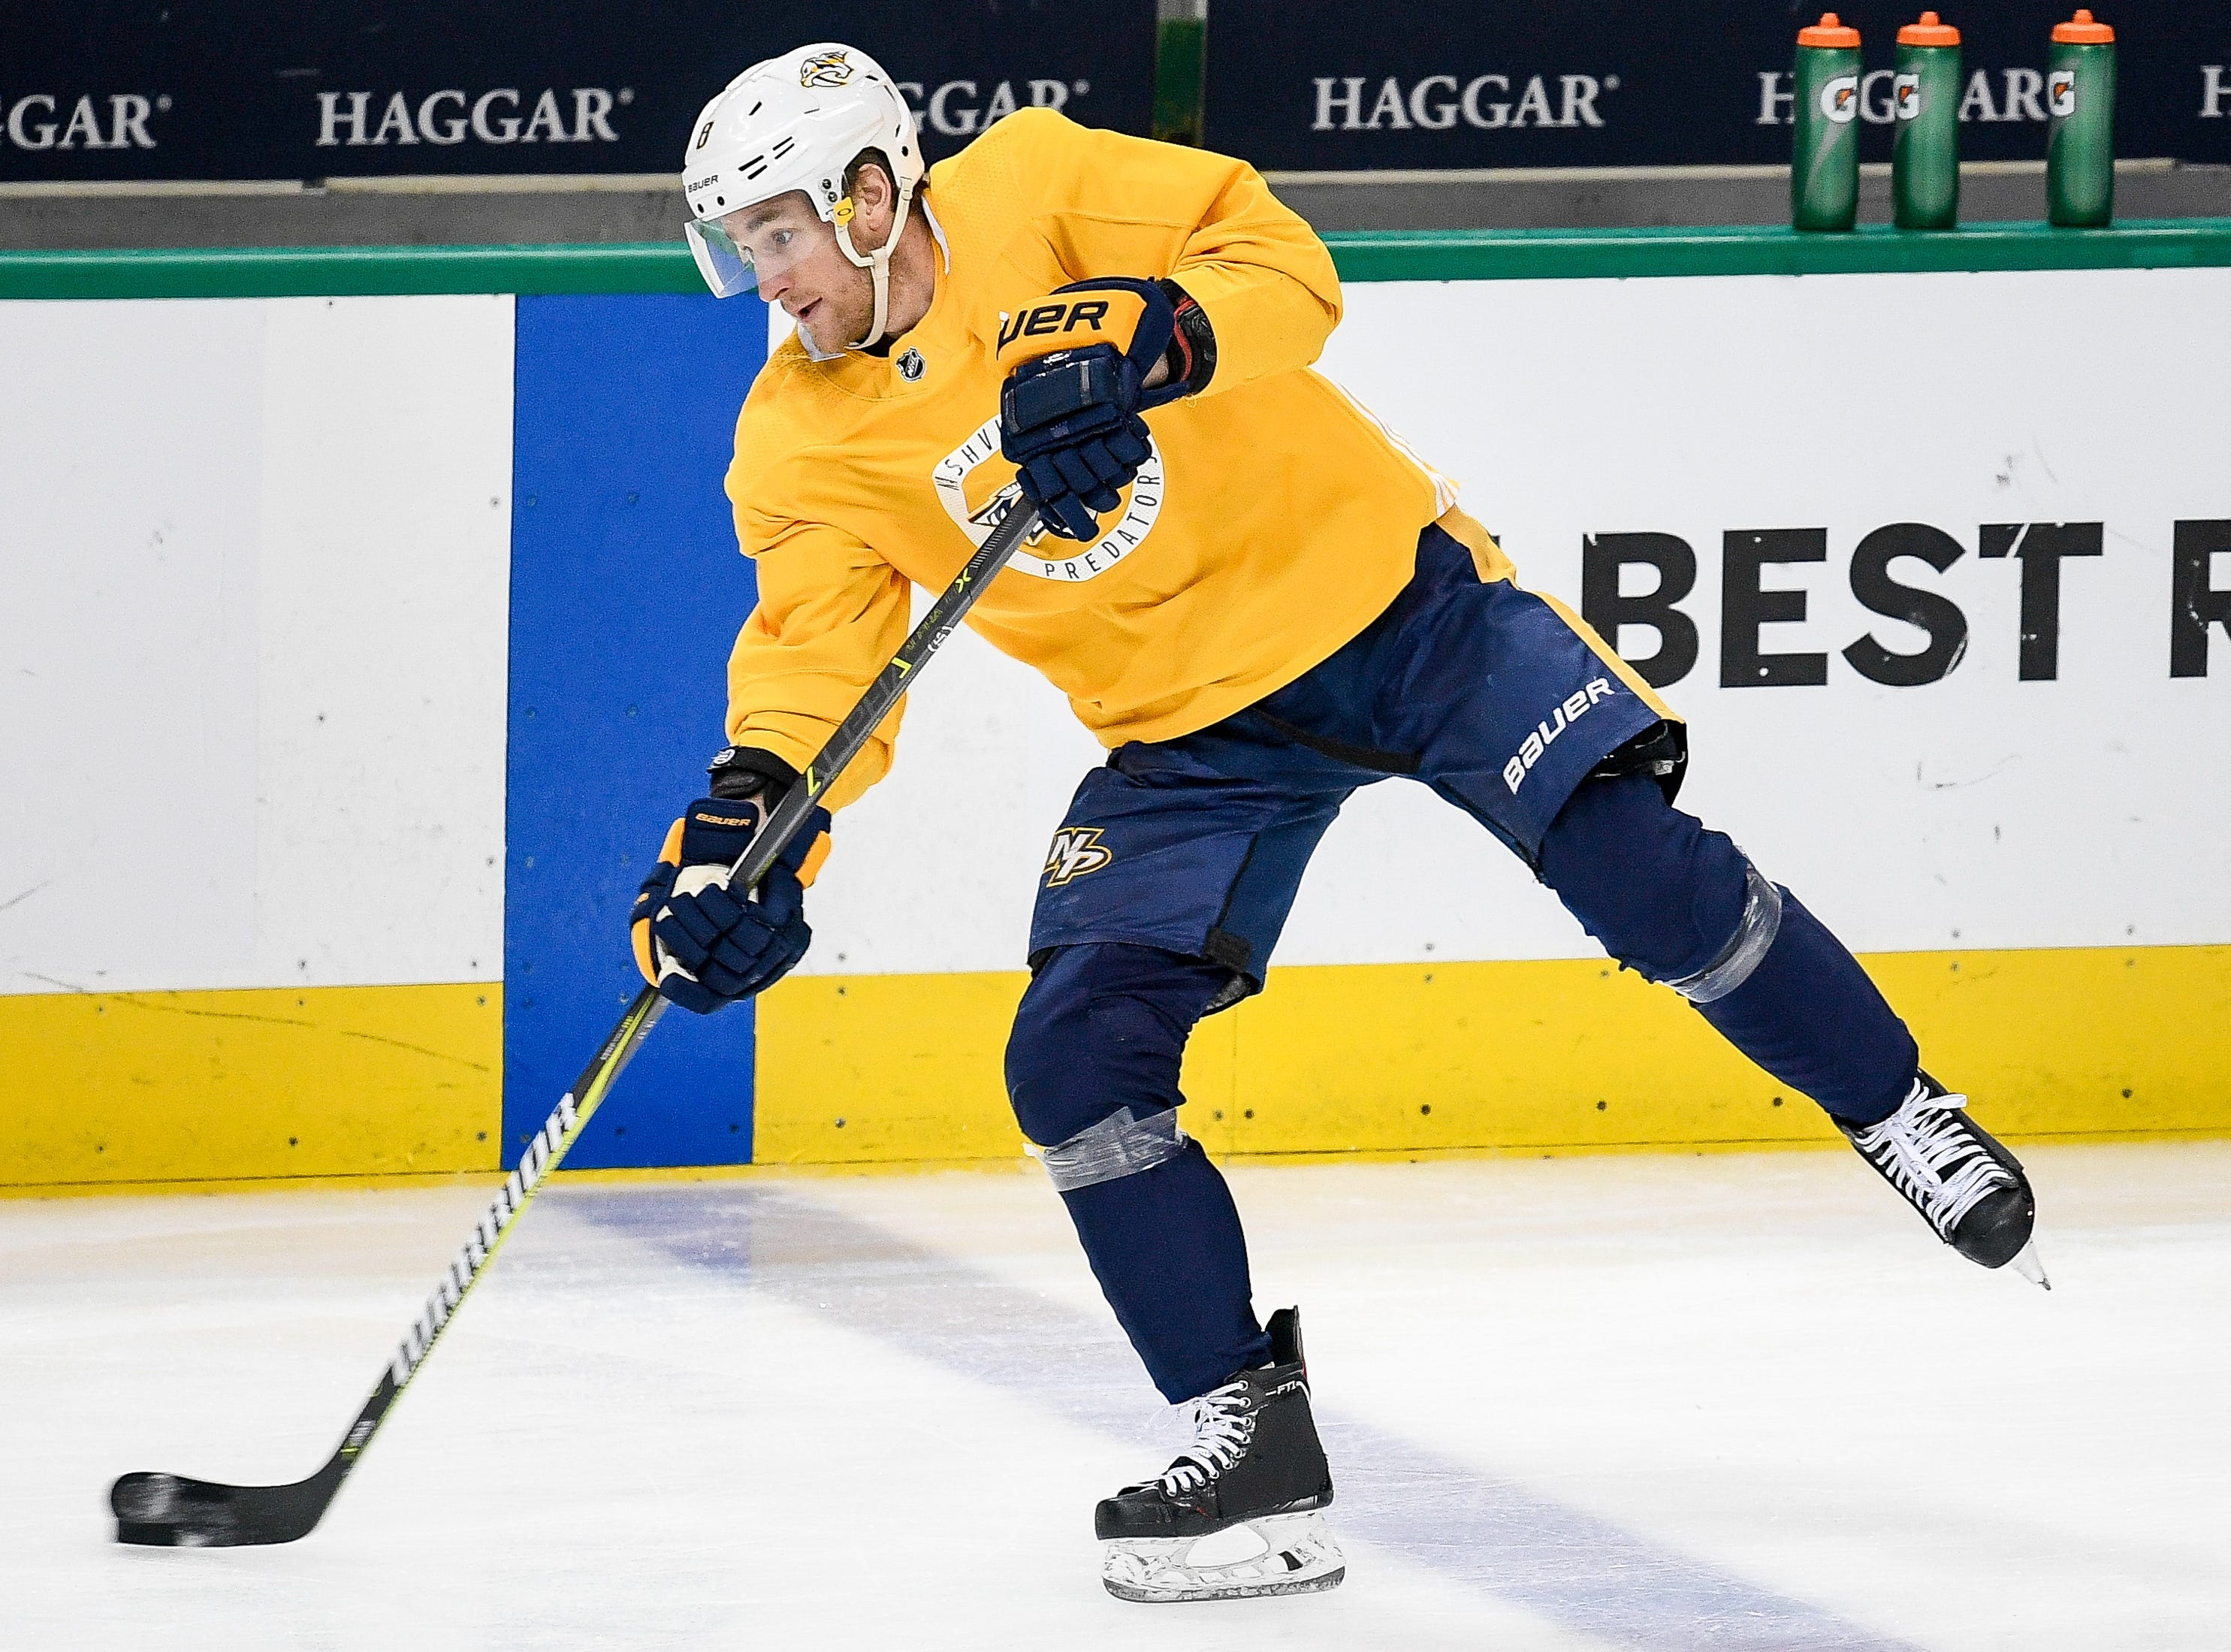 Nashville Predators center Kyle Turris (8) shoots during practice before the divisional semifinal game against the Dallas Stars at the American Airlines Center in Dallas, Texas, Monday, April 22, 2019.